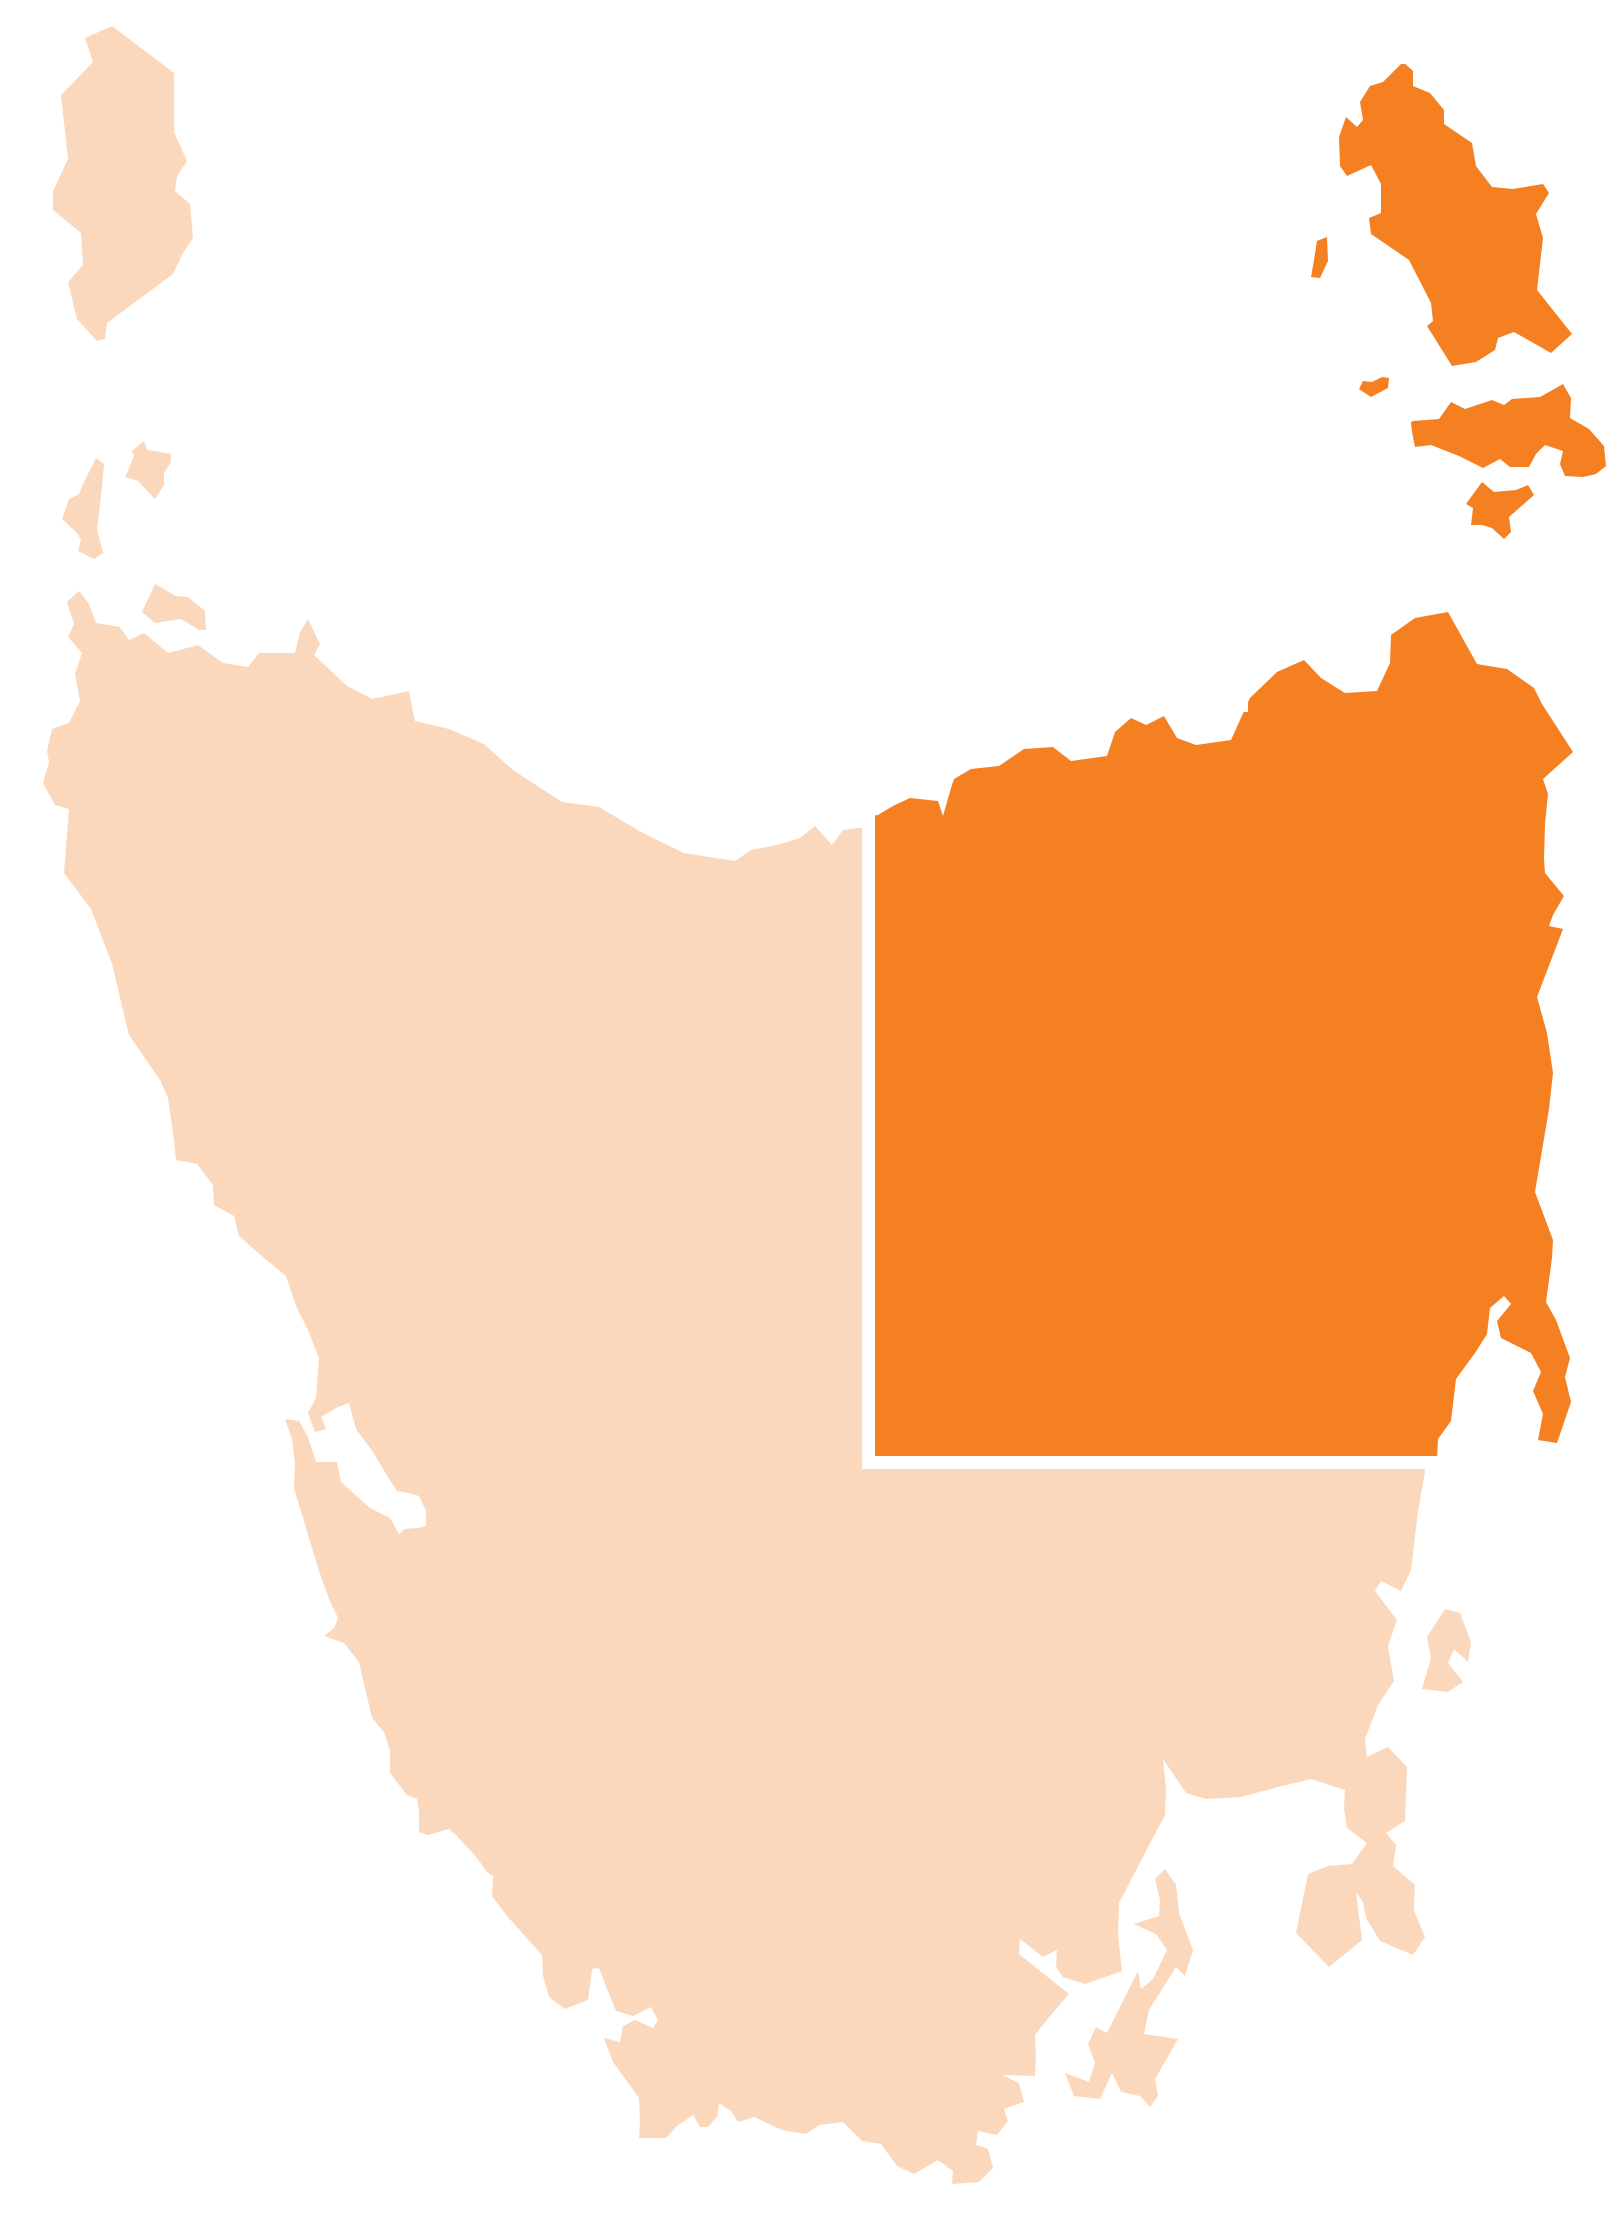 Map of Tasmania and the North highlighted